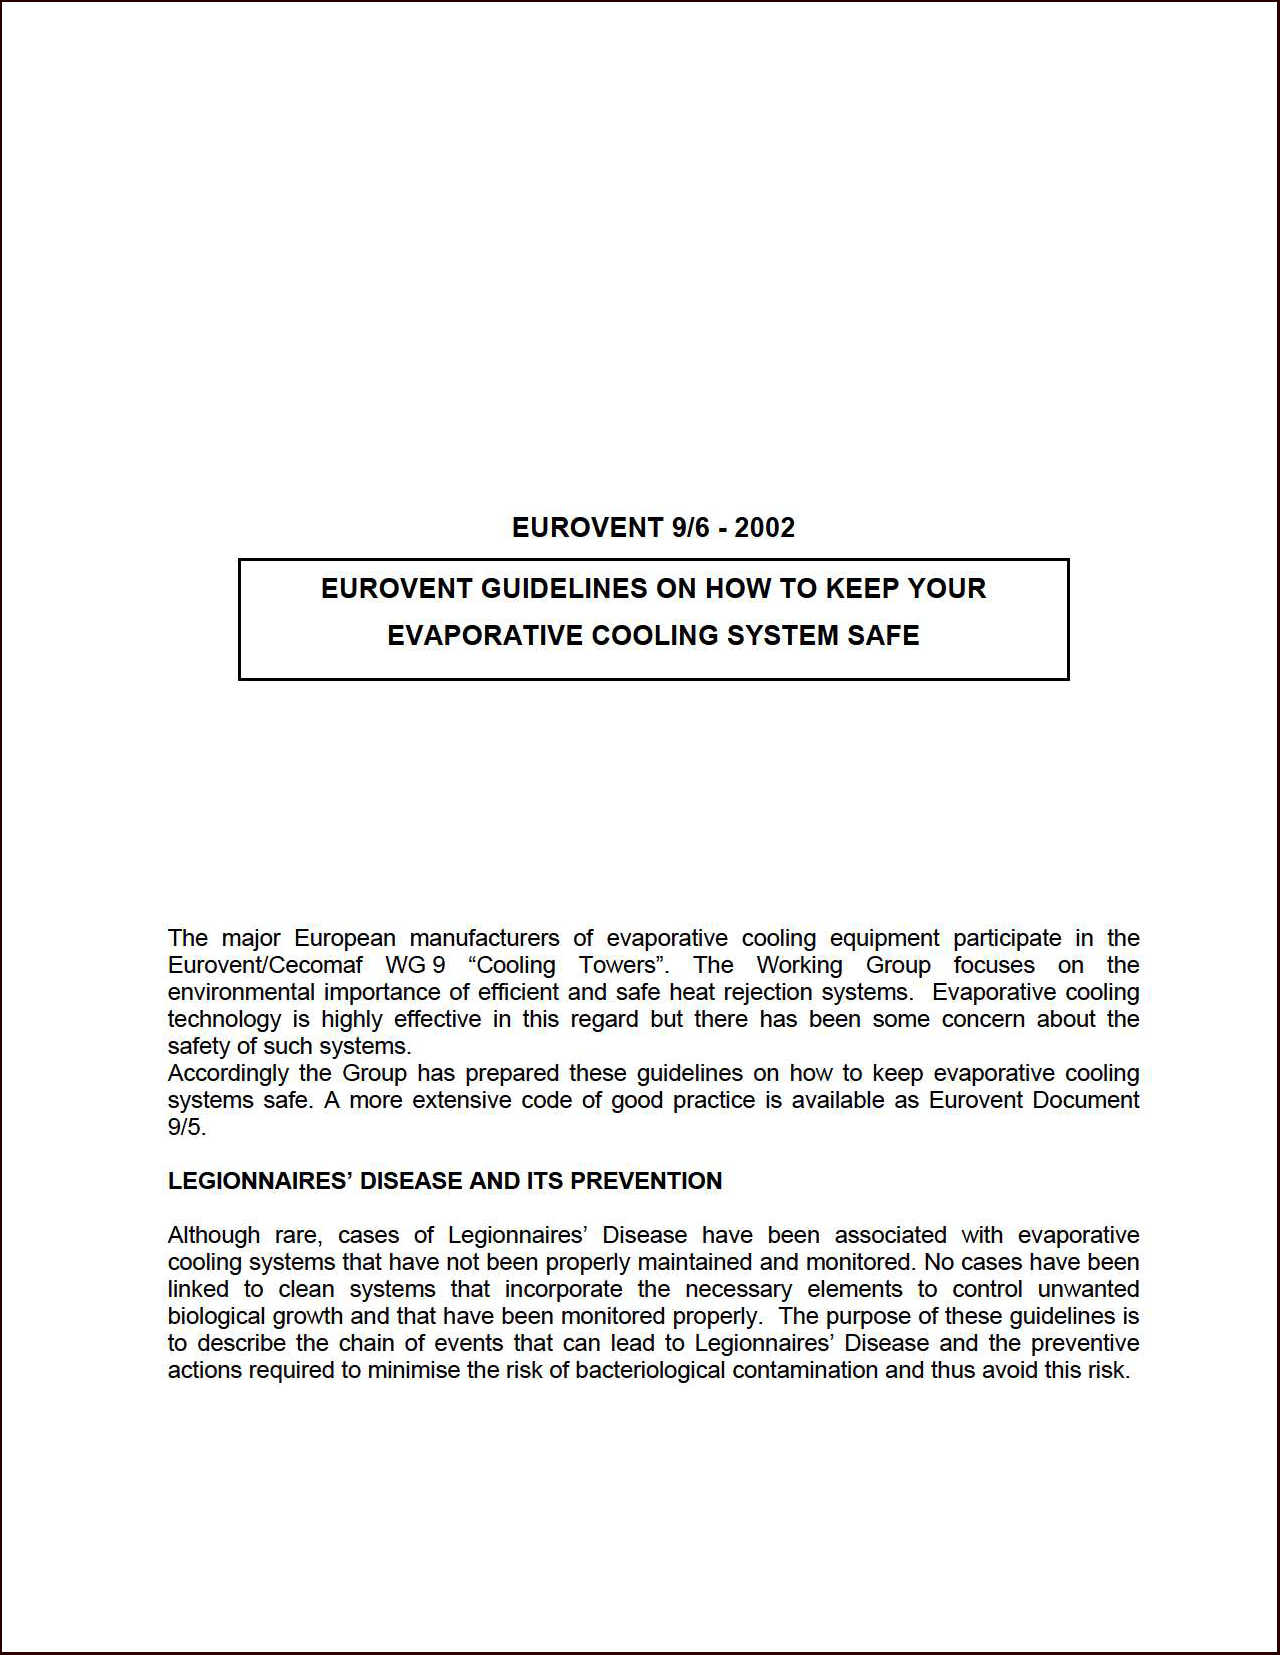 2002 - Eurovent guidelines on how to keep your evaporative cooling system safe